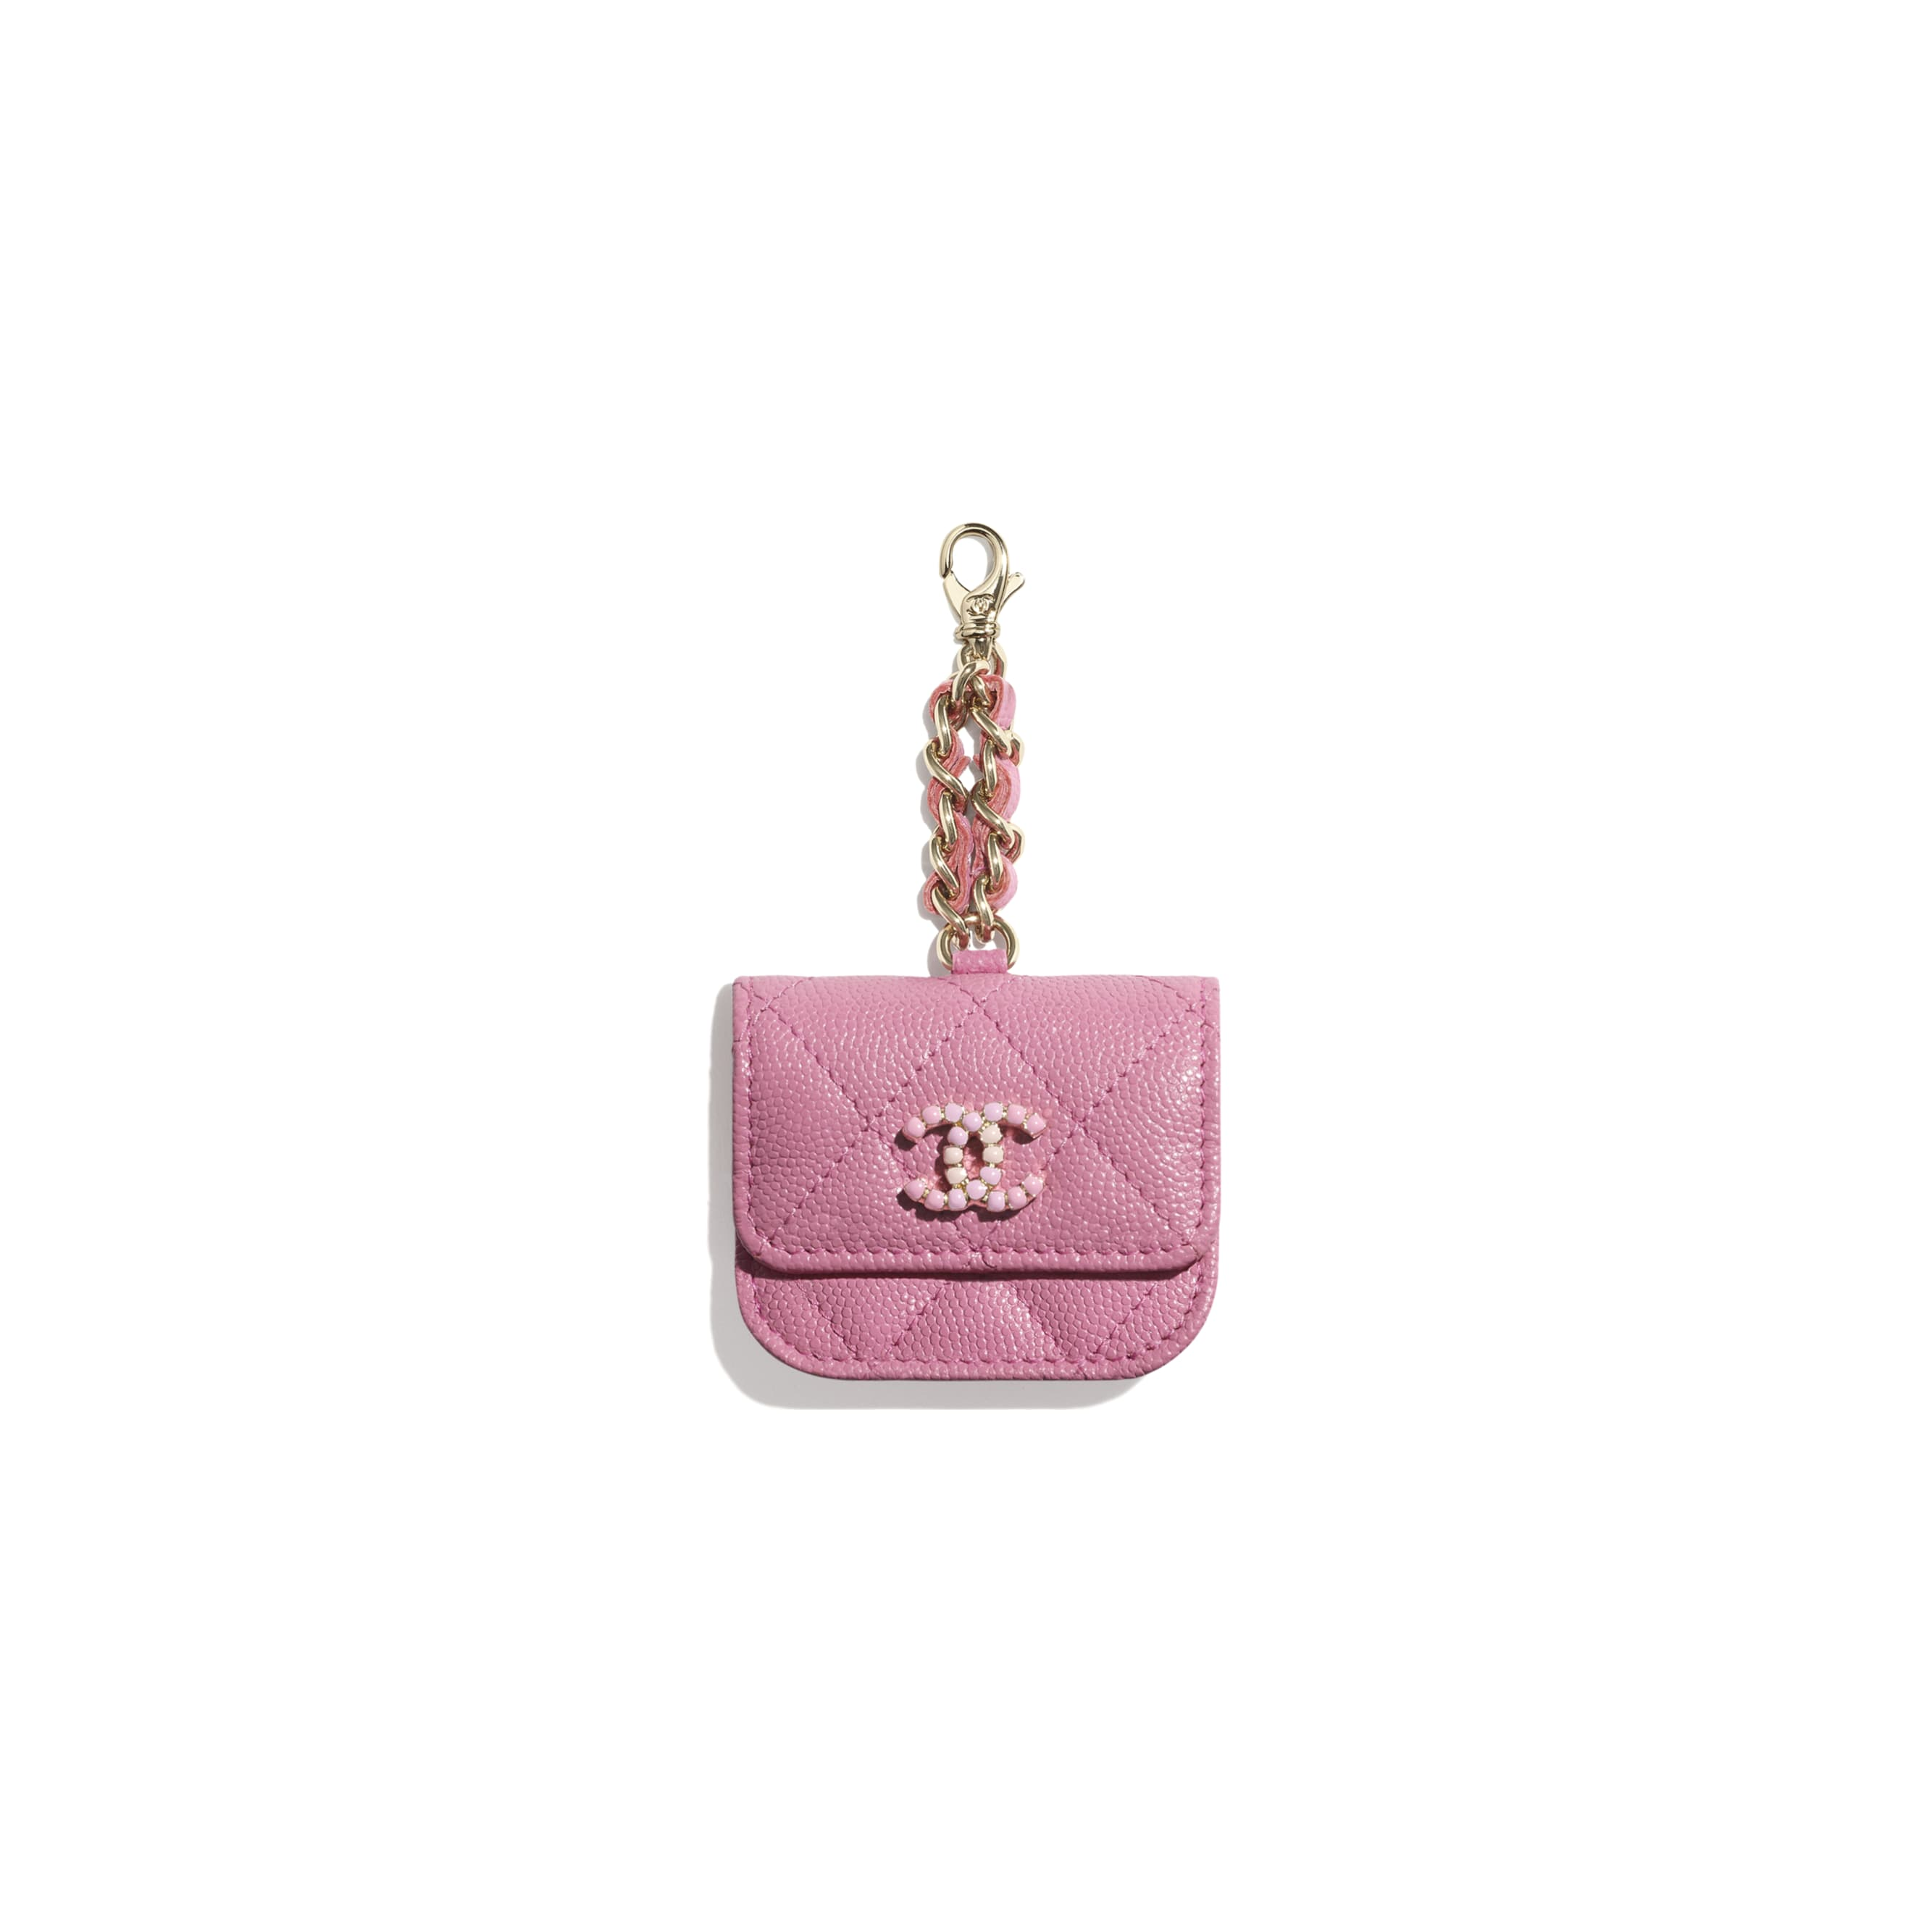 AirPods Pro Case - Pink - Grained Calfskin & Laquered Gold-Tone Metal - CHANEL - Default view - see standard sized version